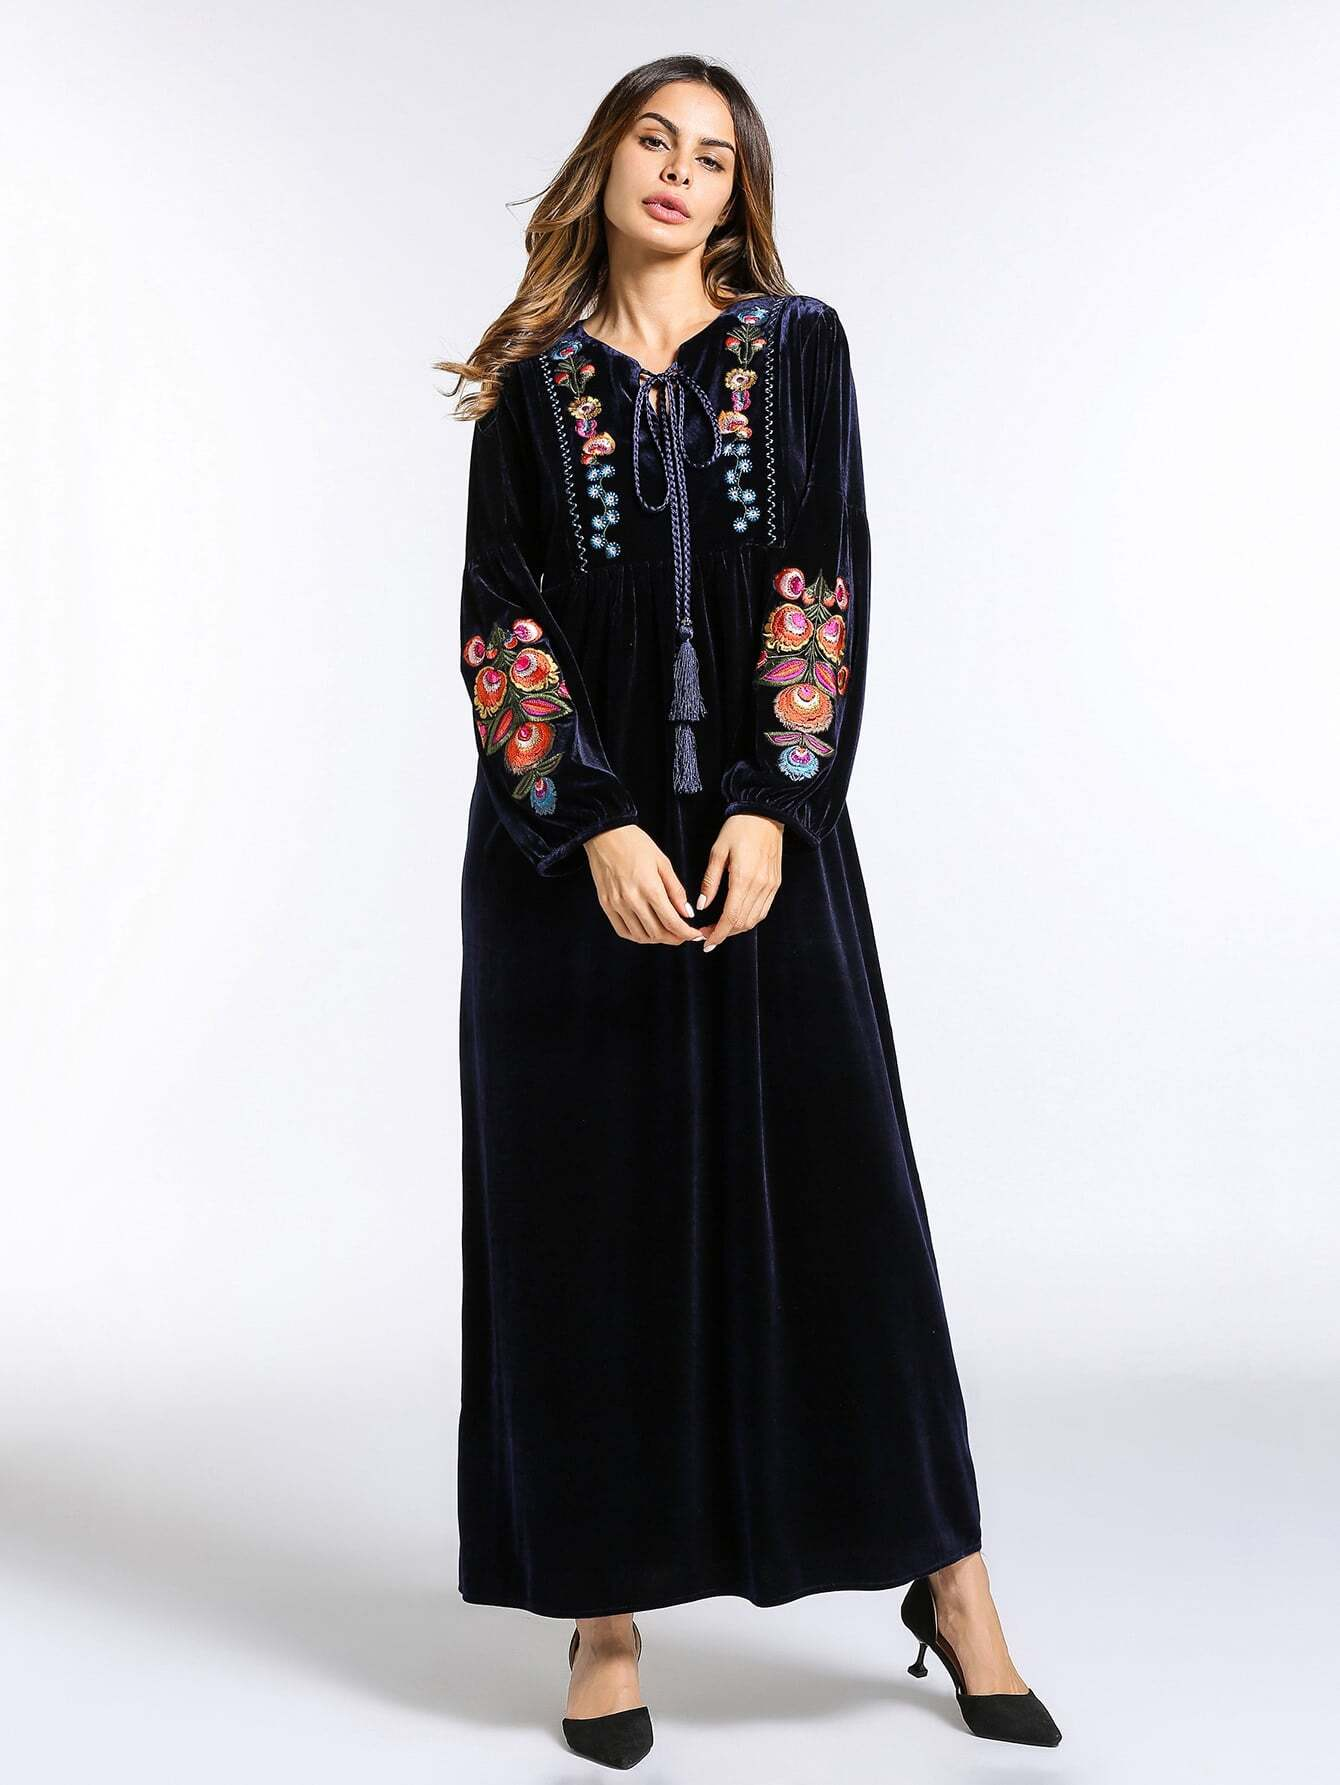 Tassel Tie Neck Embroidery Velvet Dress